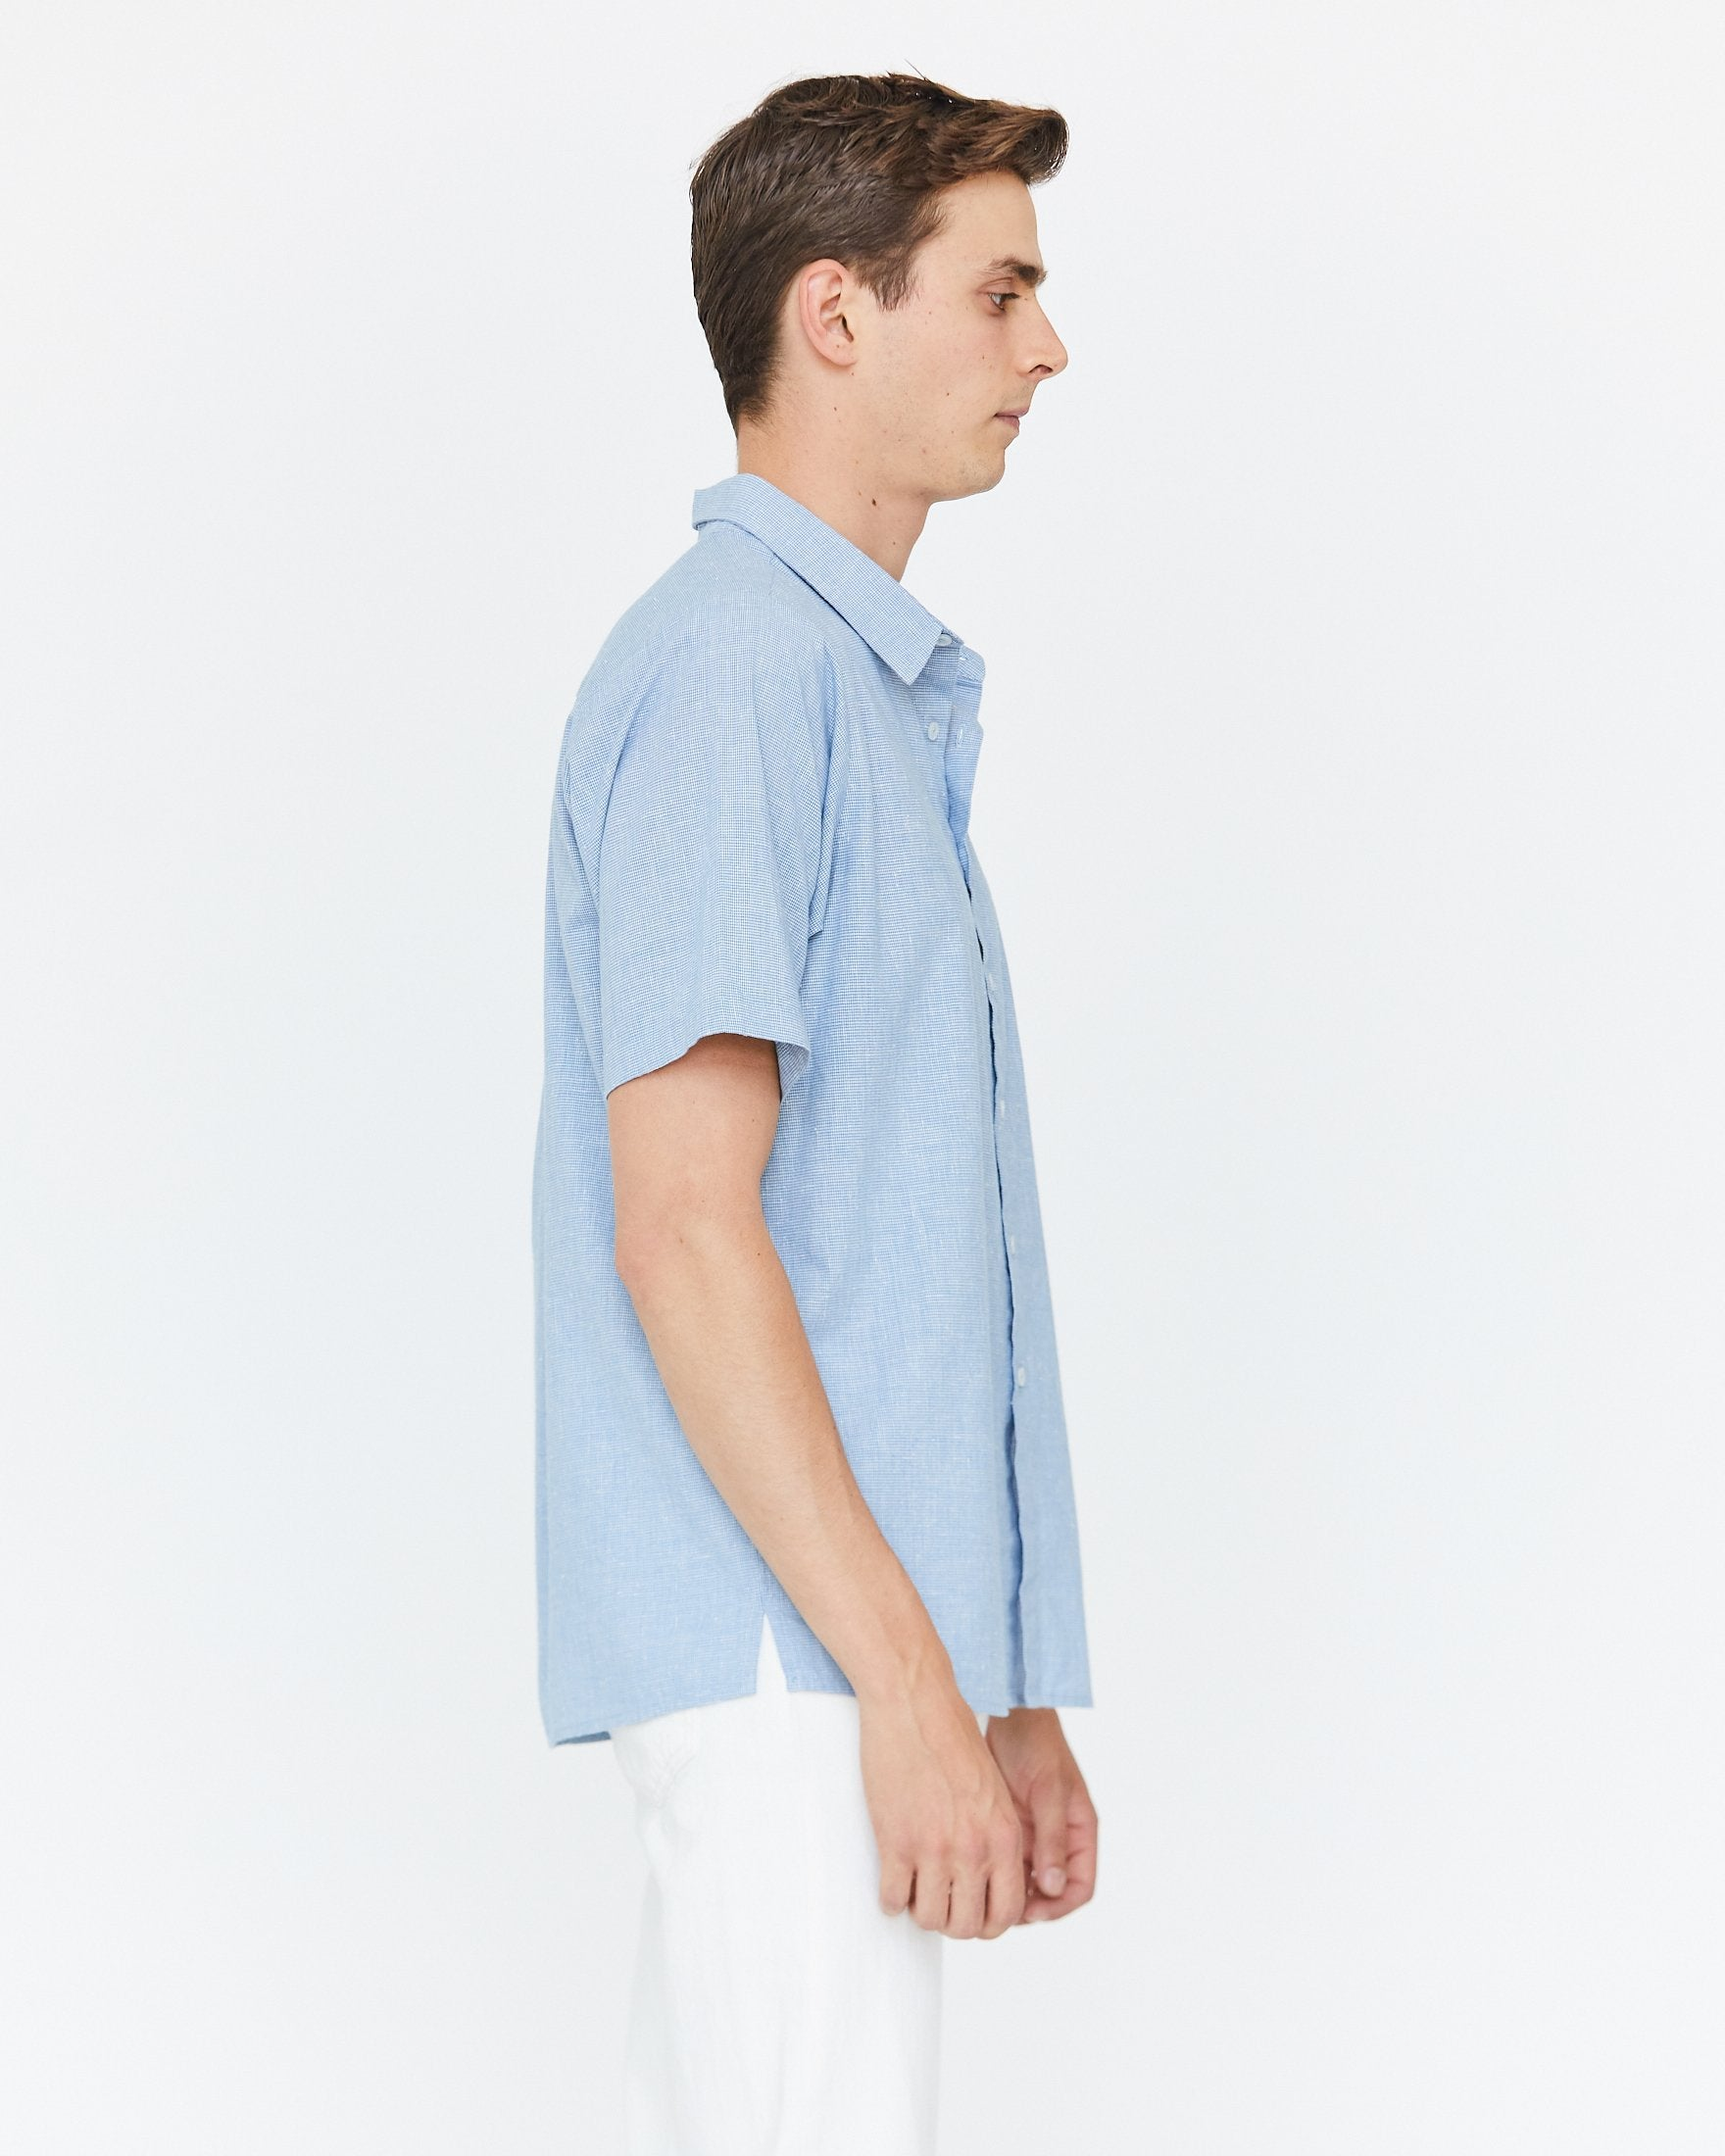 JEREMY BUTTON DOWN - OCEAN BLUE HOUNDSTOOTH